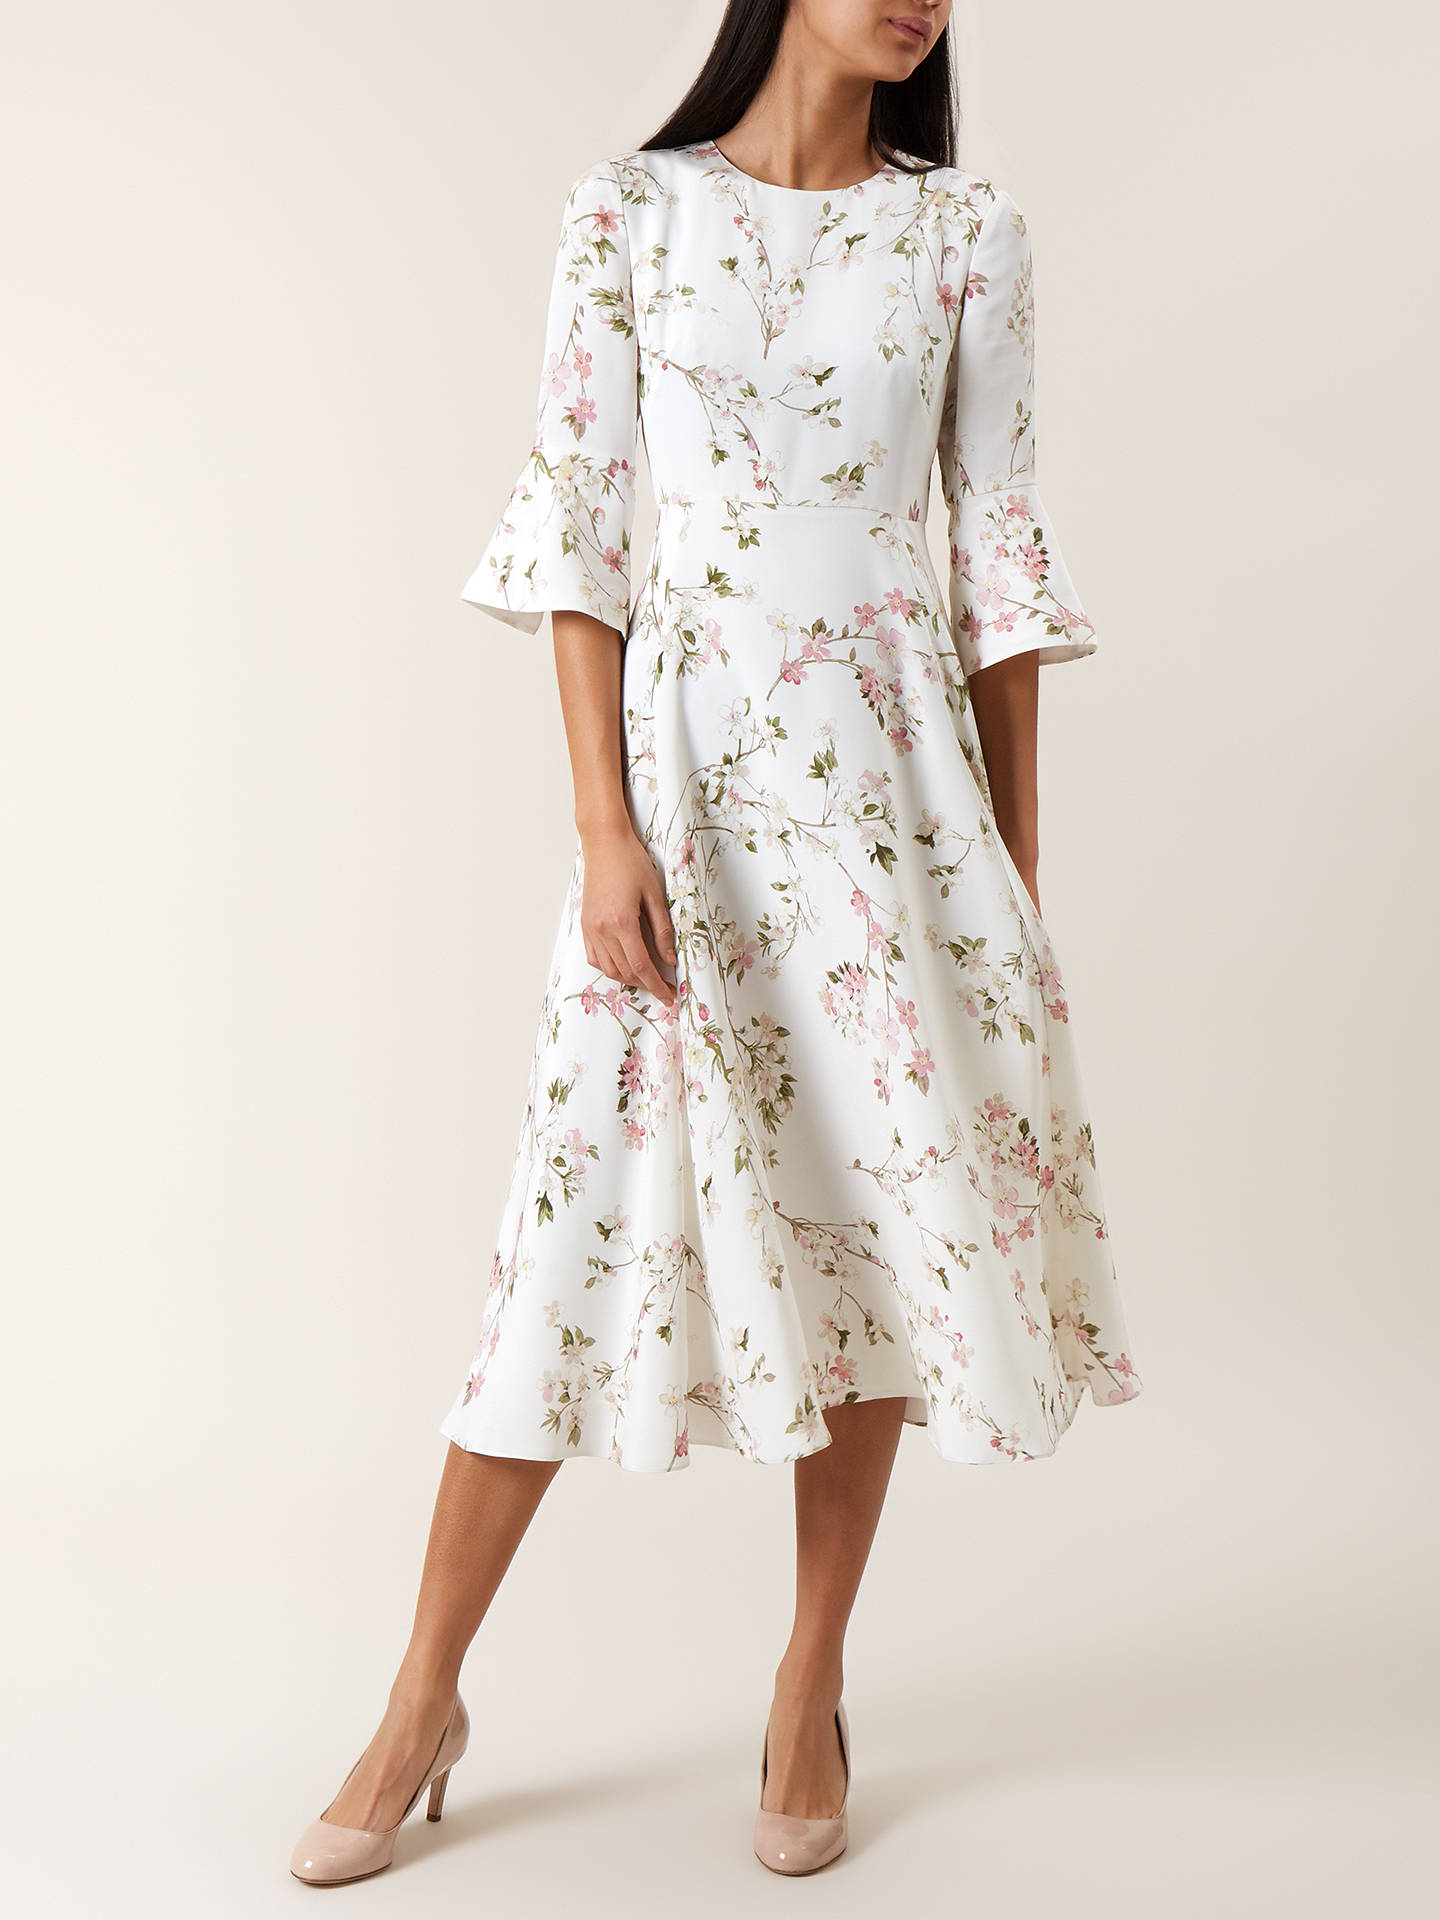 1b00a977 Buy Hobbs Agatha Dress, Ivory Multi, 6 Online at johnlewis.com ...